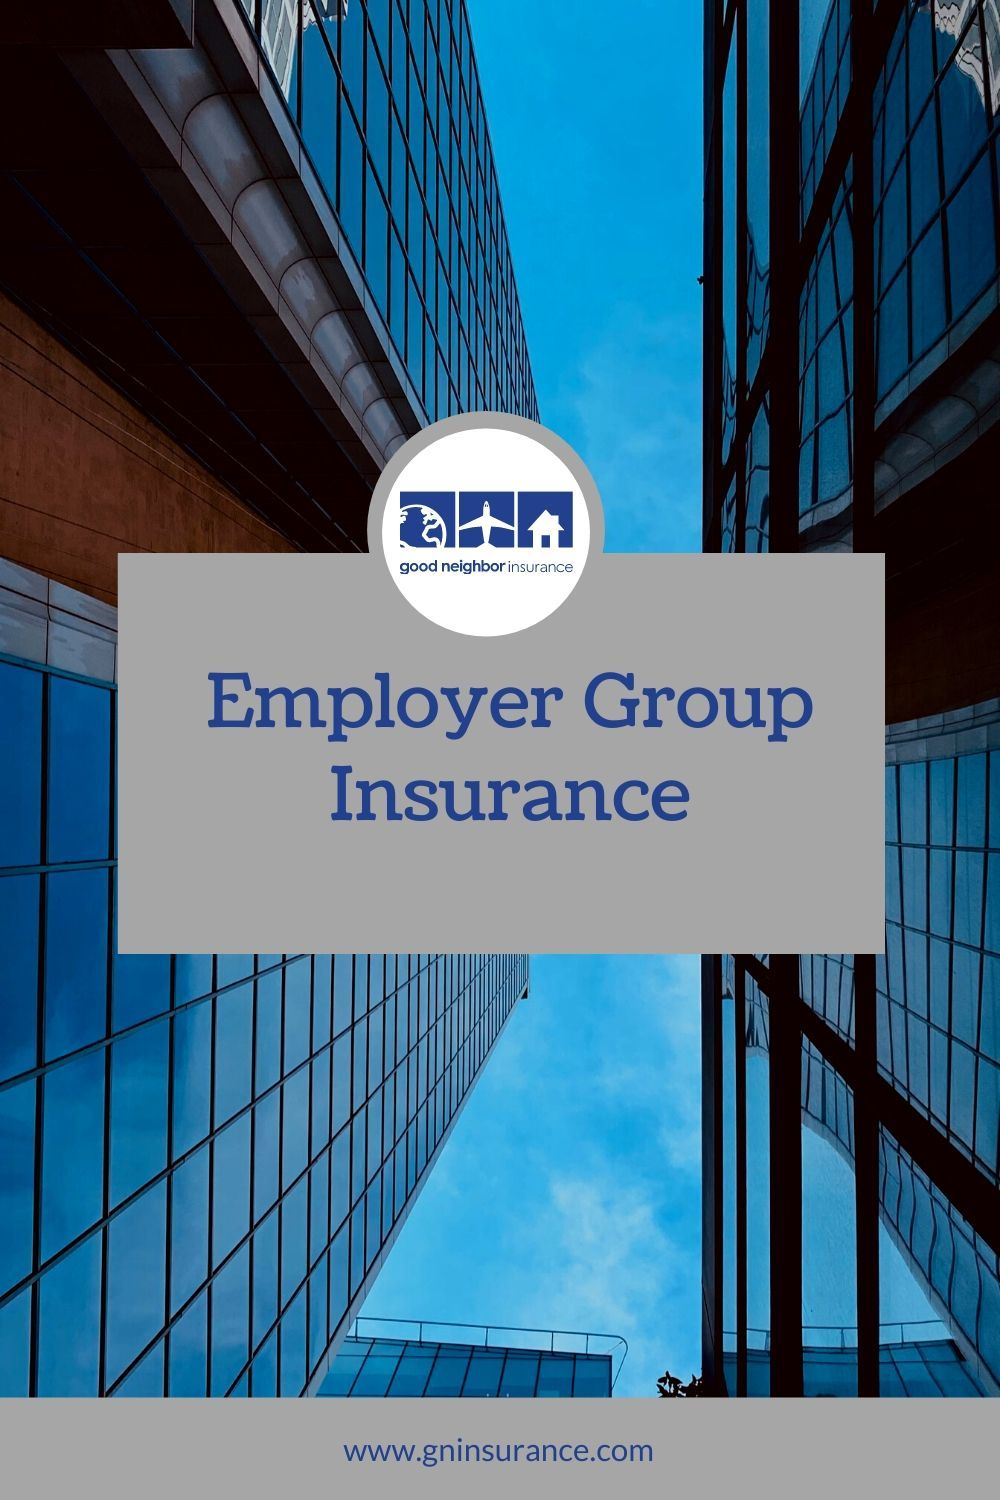 International Employer Group Insurance in 2020 Group